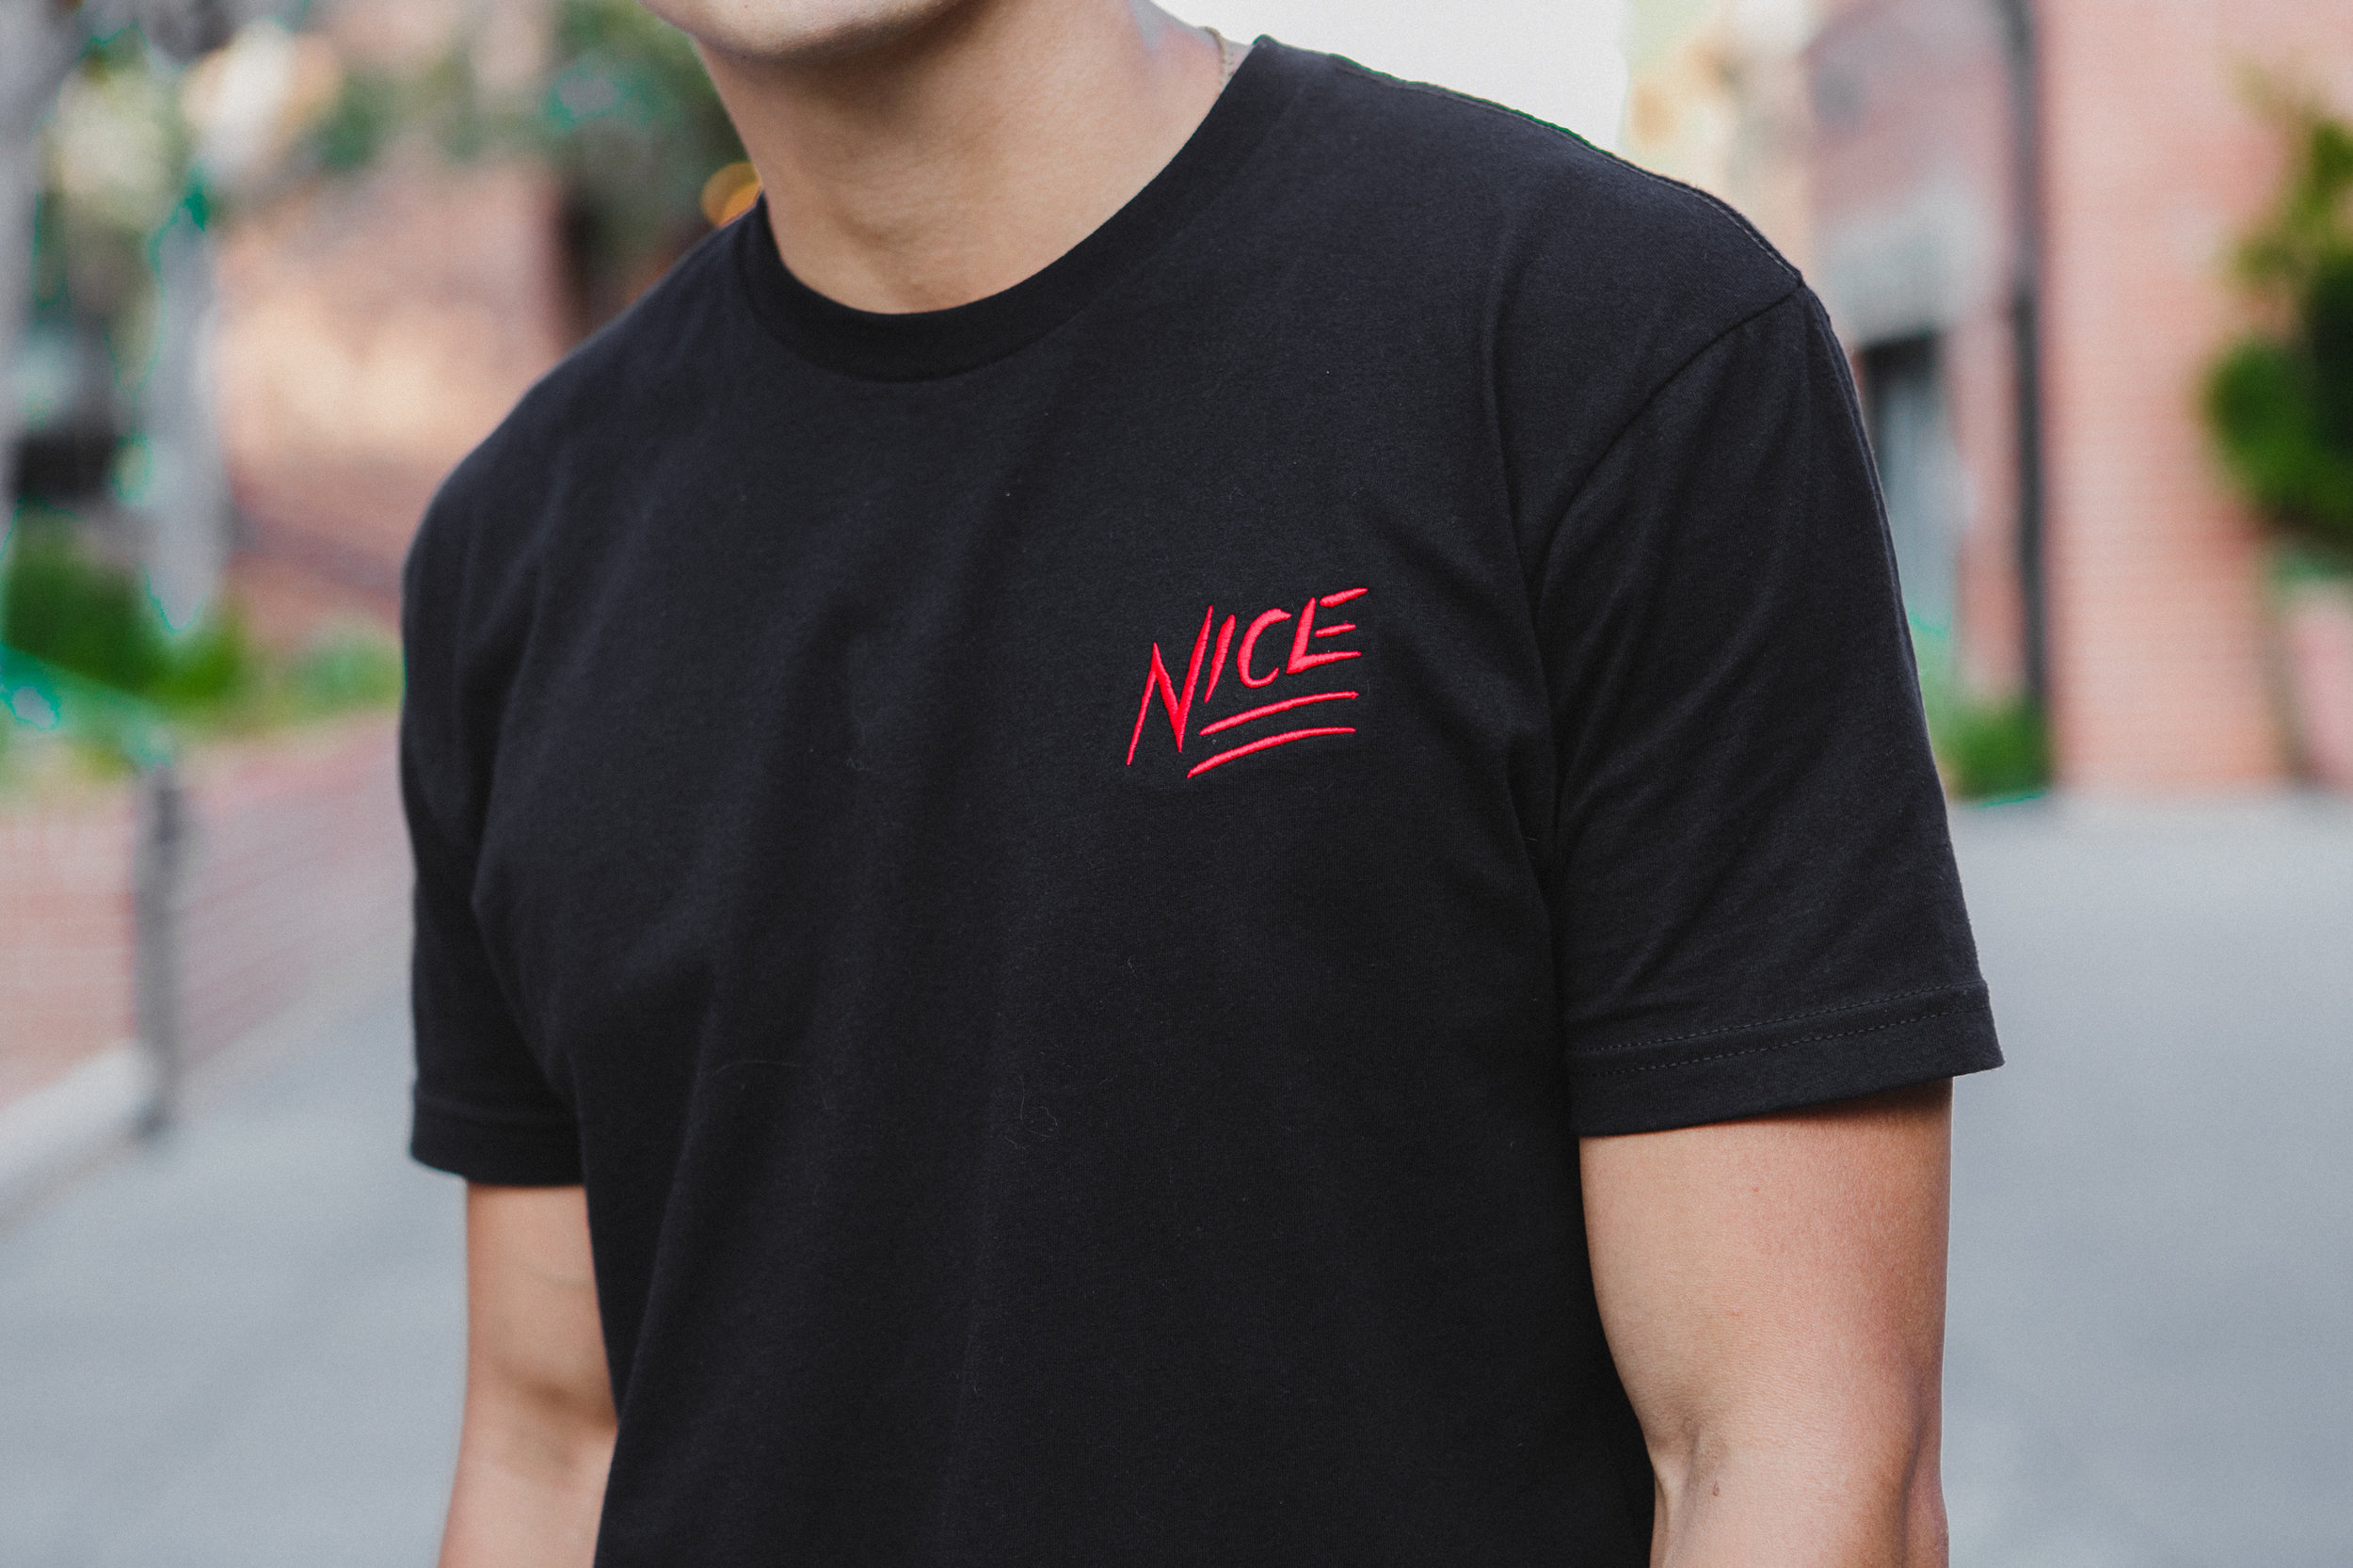 wf_nice_guy_apparel_61.jpg